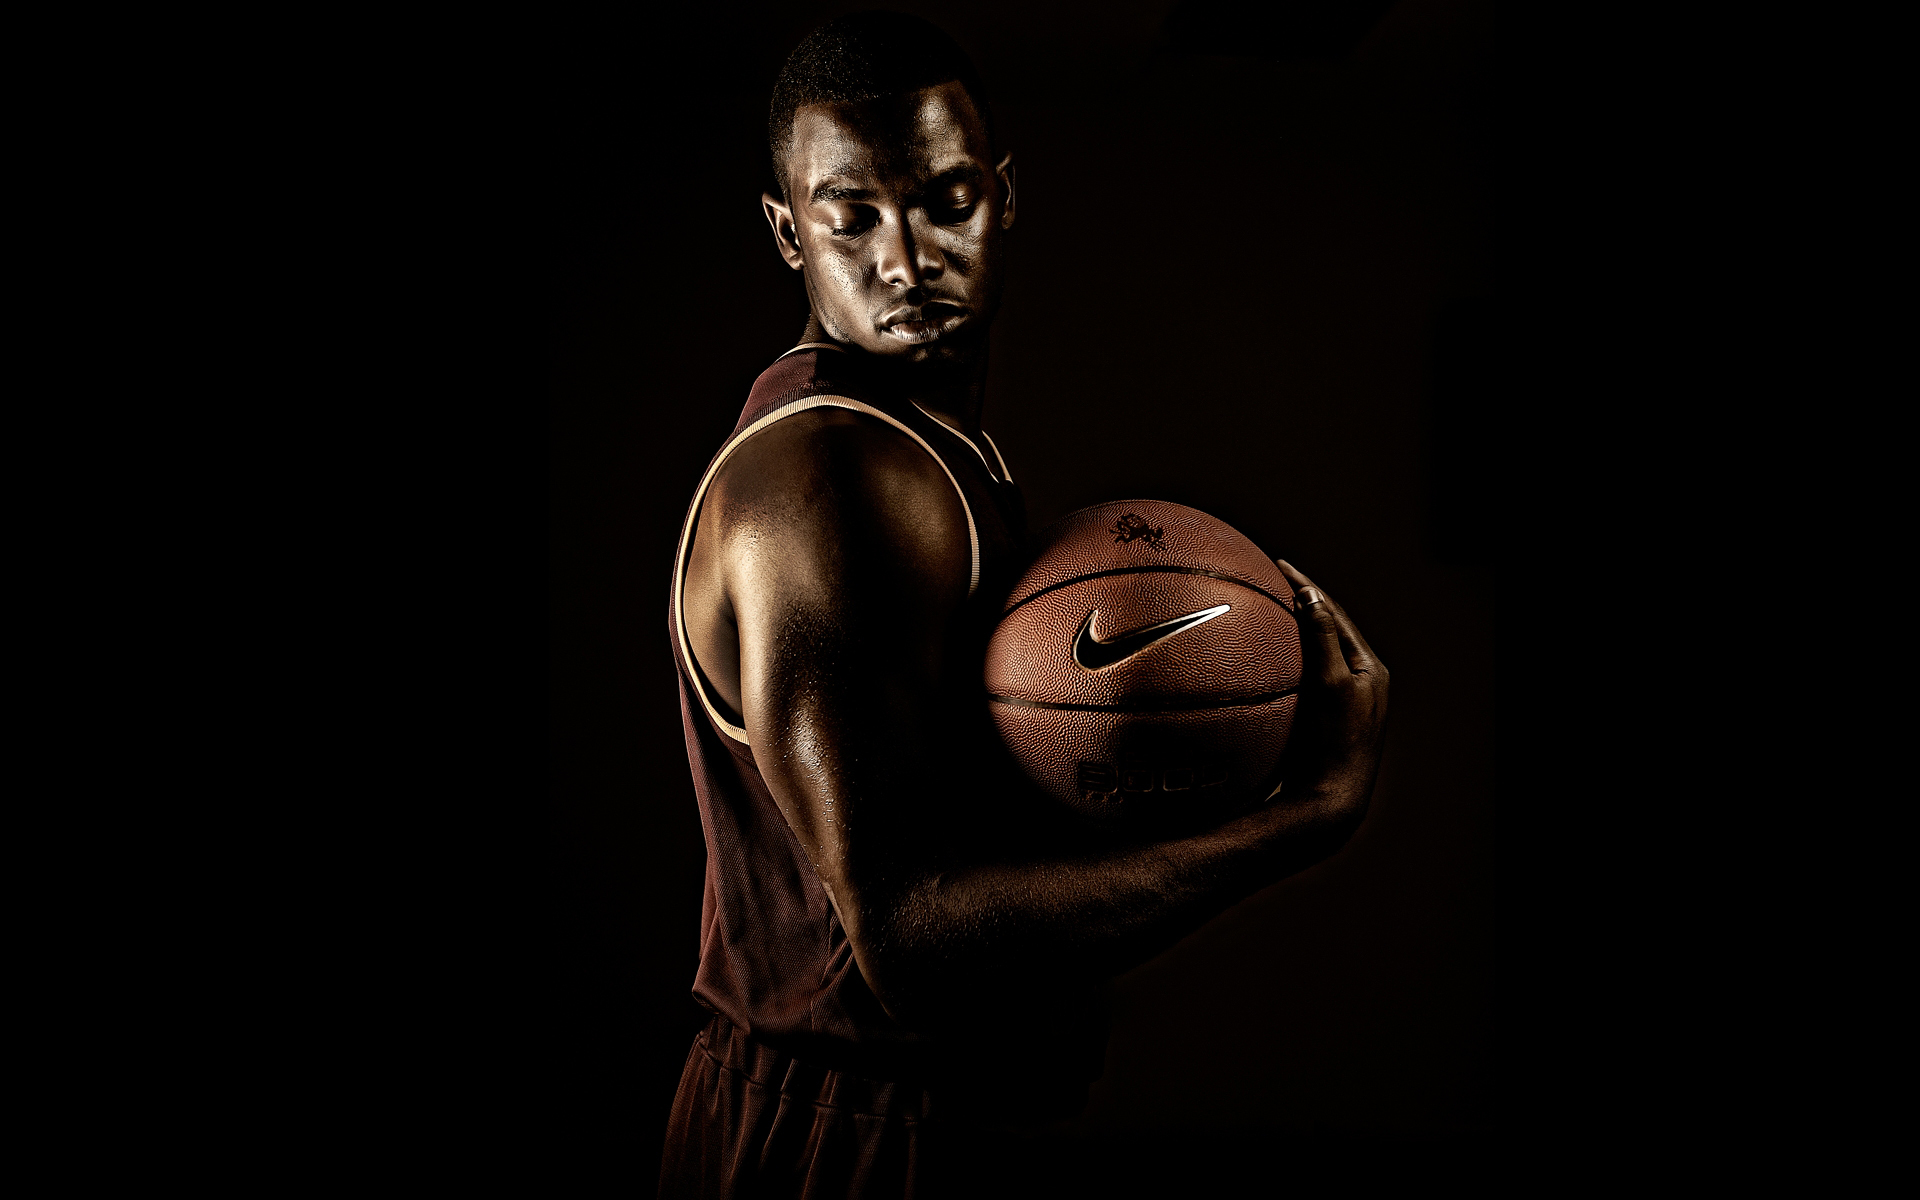 Nike Basketball Campaign photographed by Blair Bunting